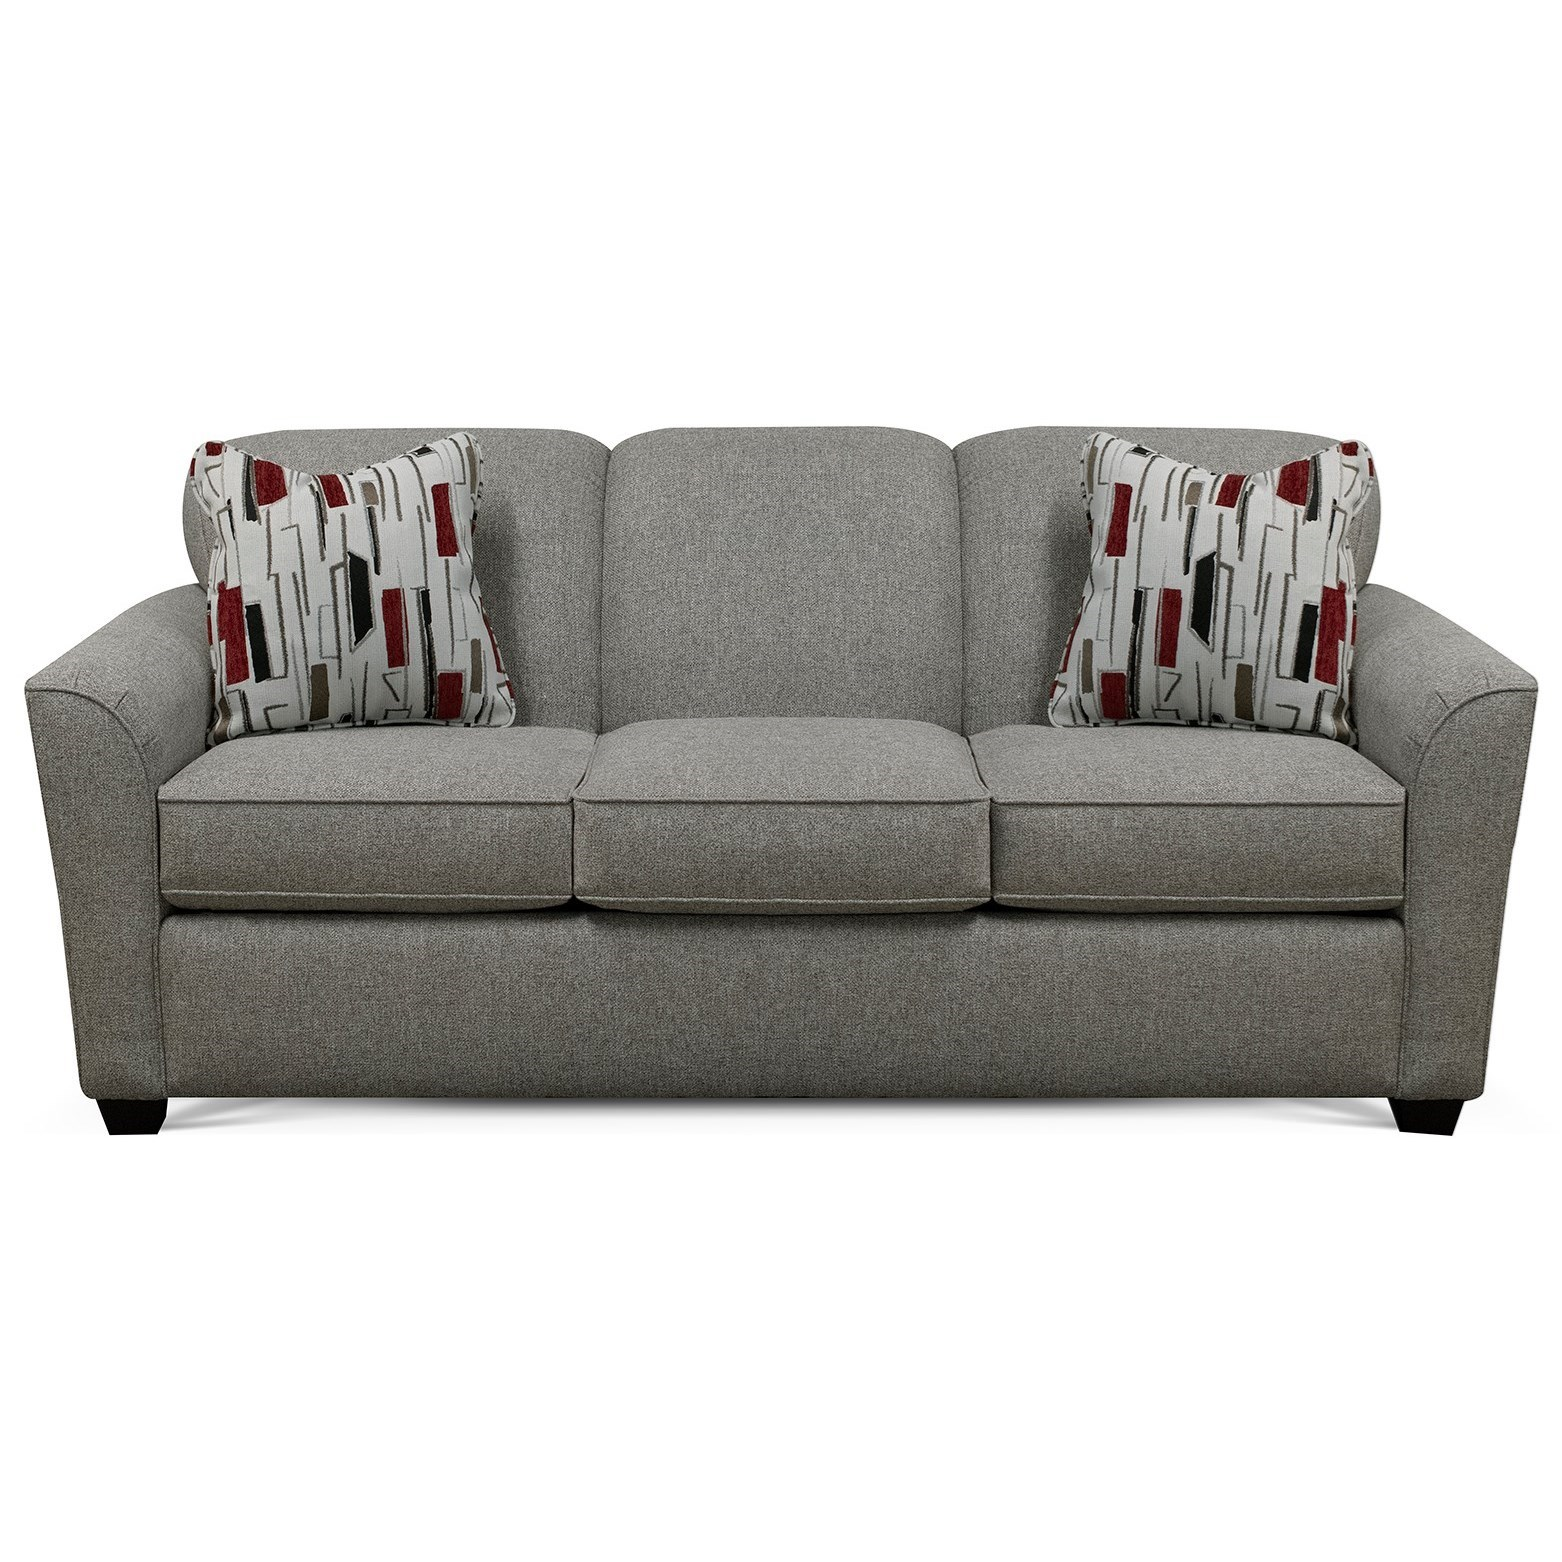 V30 Queen Sleeper Sofa by Alexvale at Turk Furniture